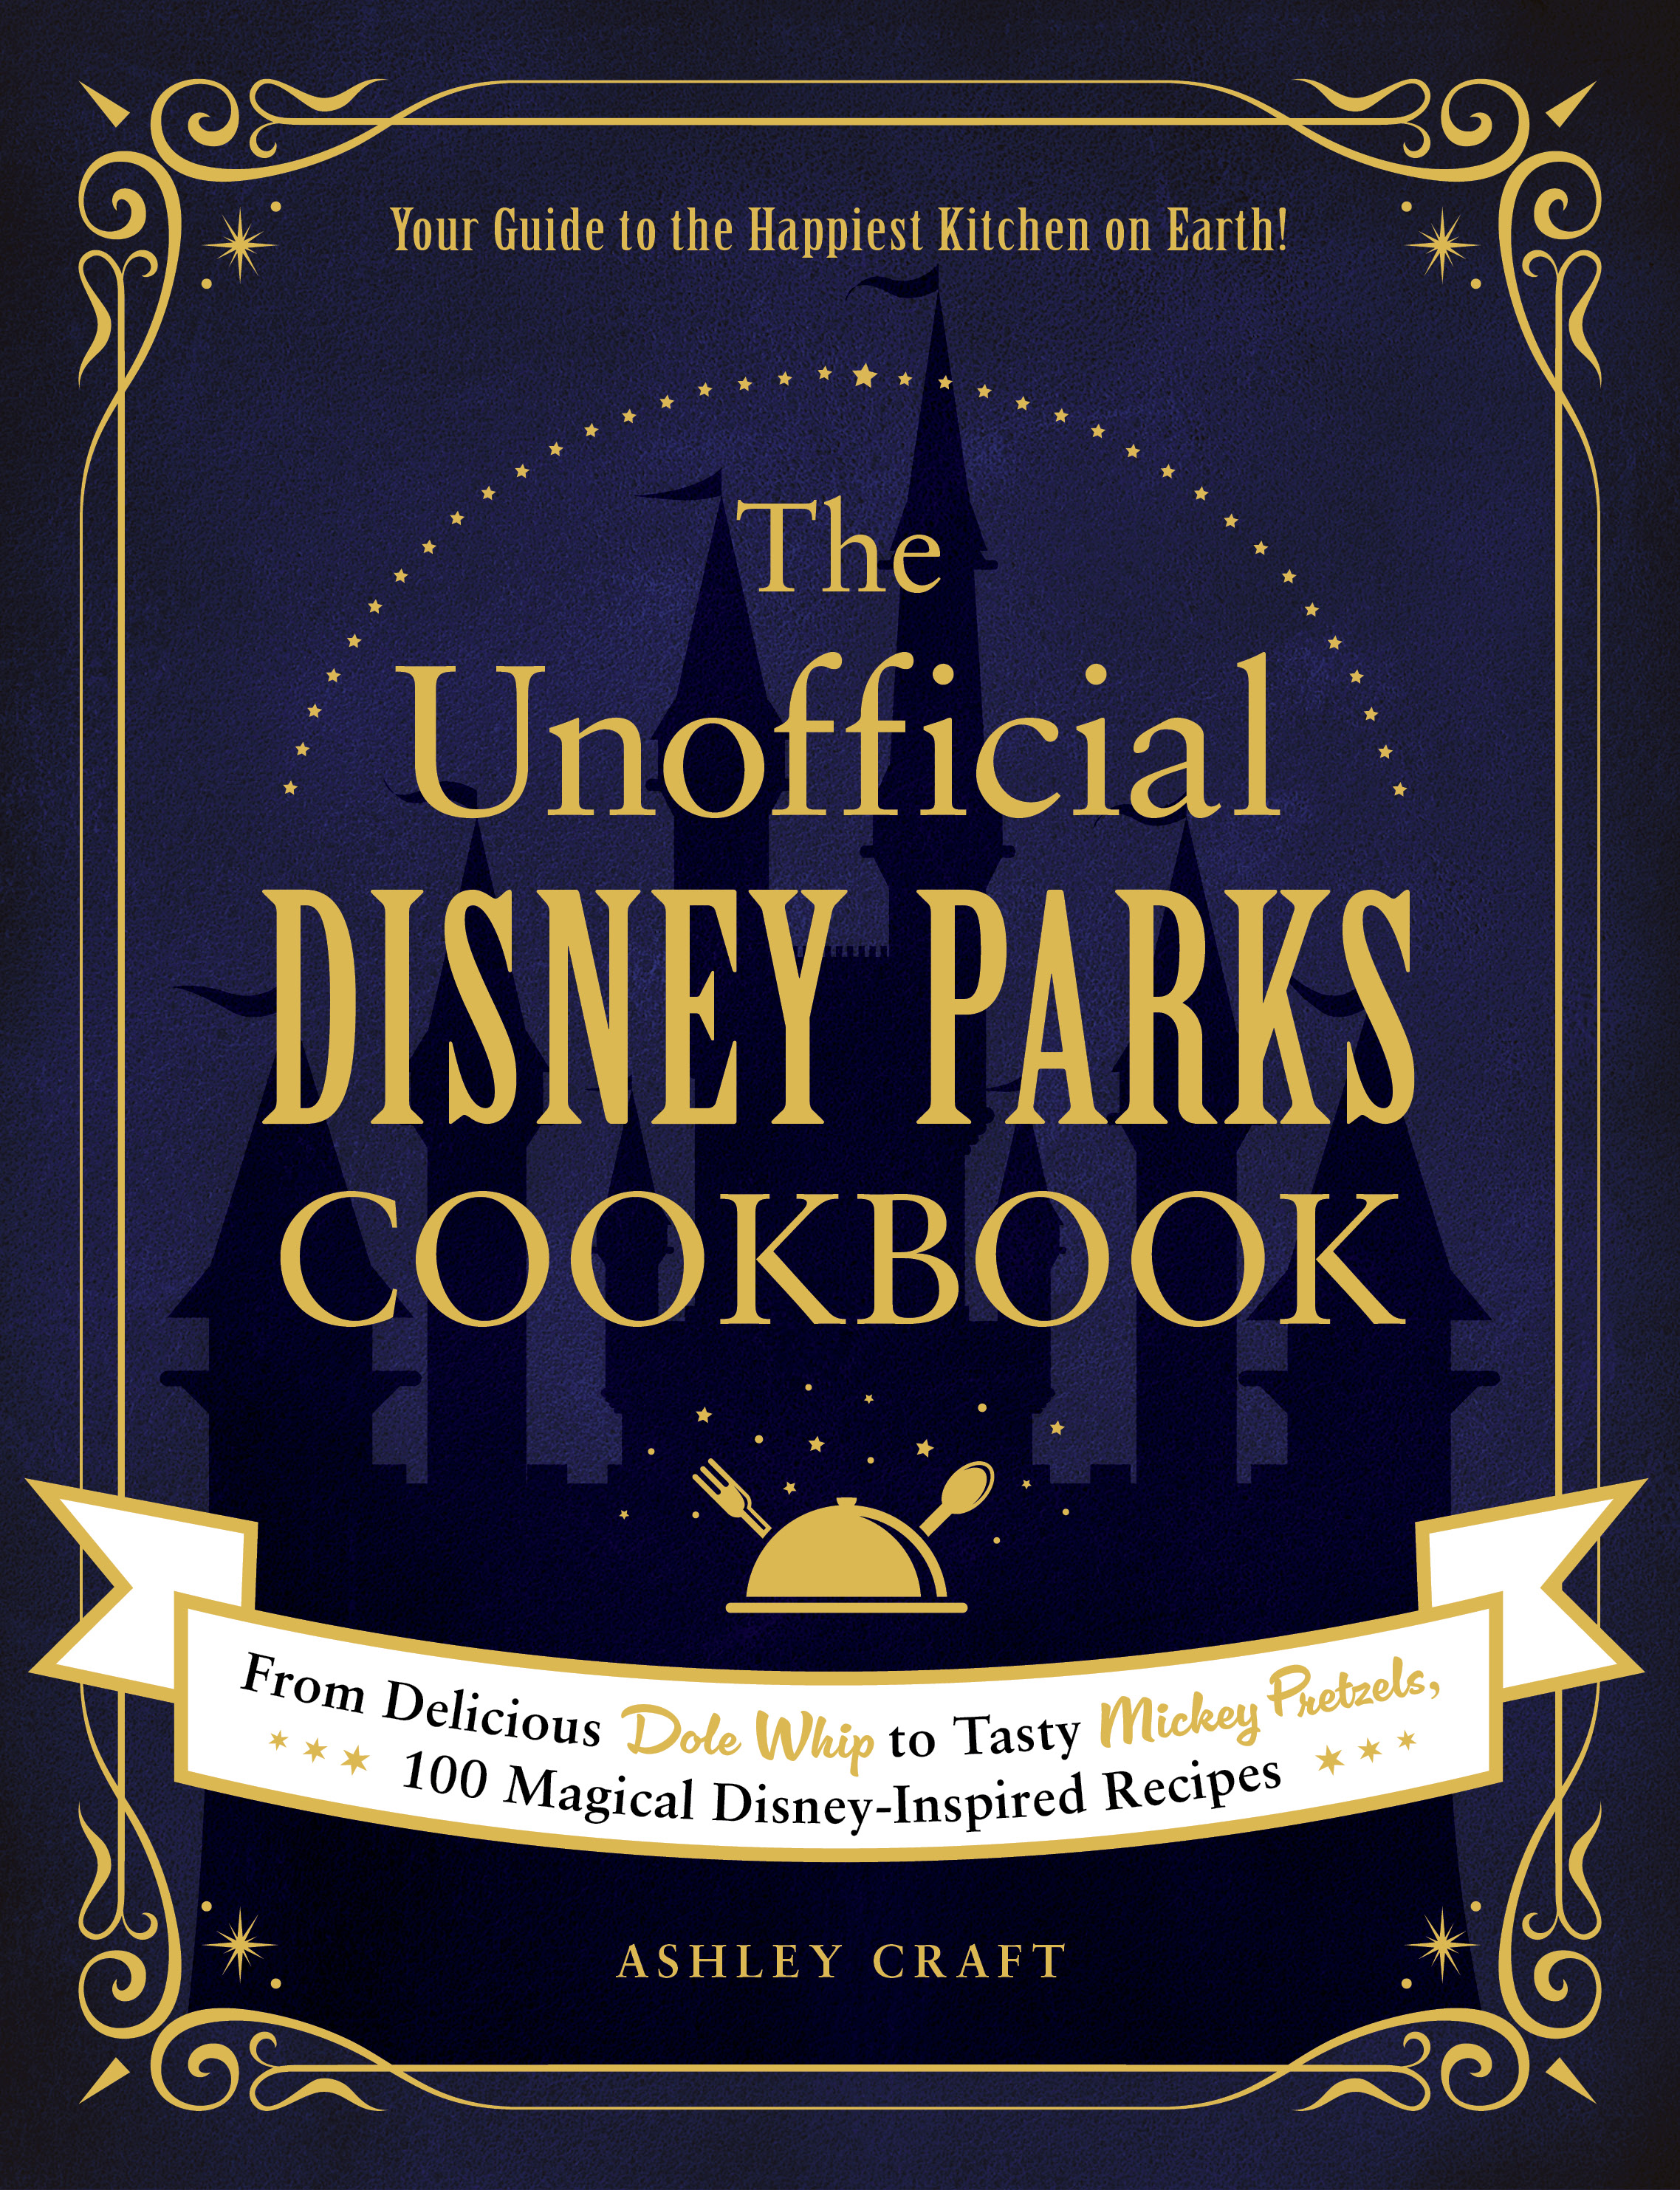 The Unofficial Disney Parks Cookbook: From Delicious Dole Whip to taste Mickey Pretzels, 100 Magical Disney-Inspired Recipes